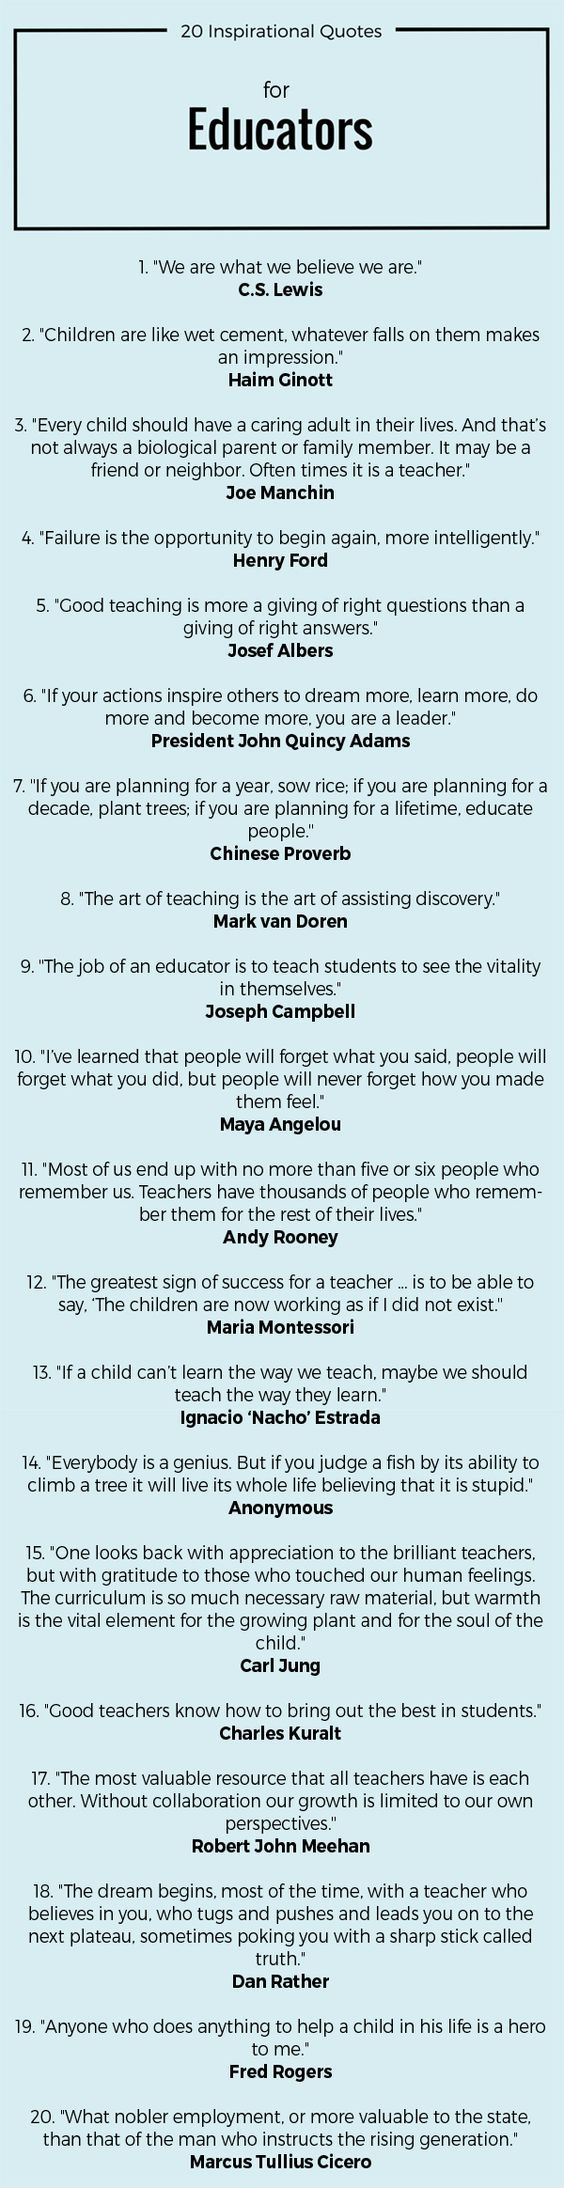 20 Inspirational Quotes for Educators [infographic]